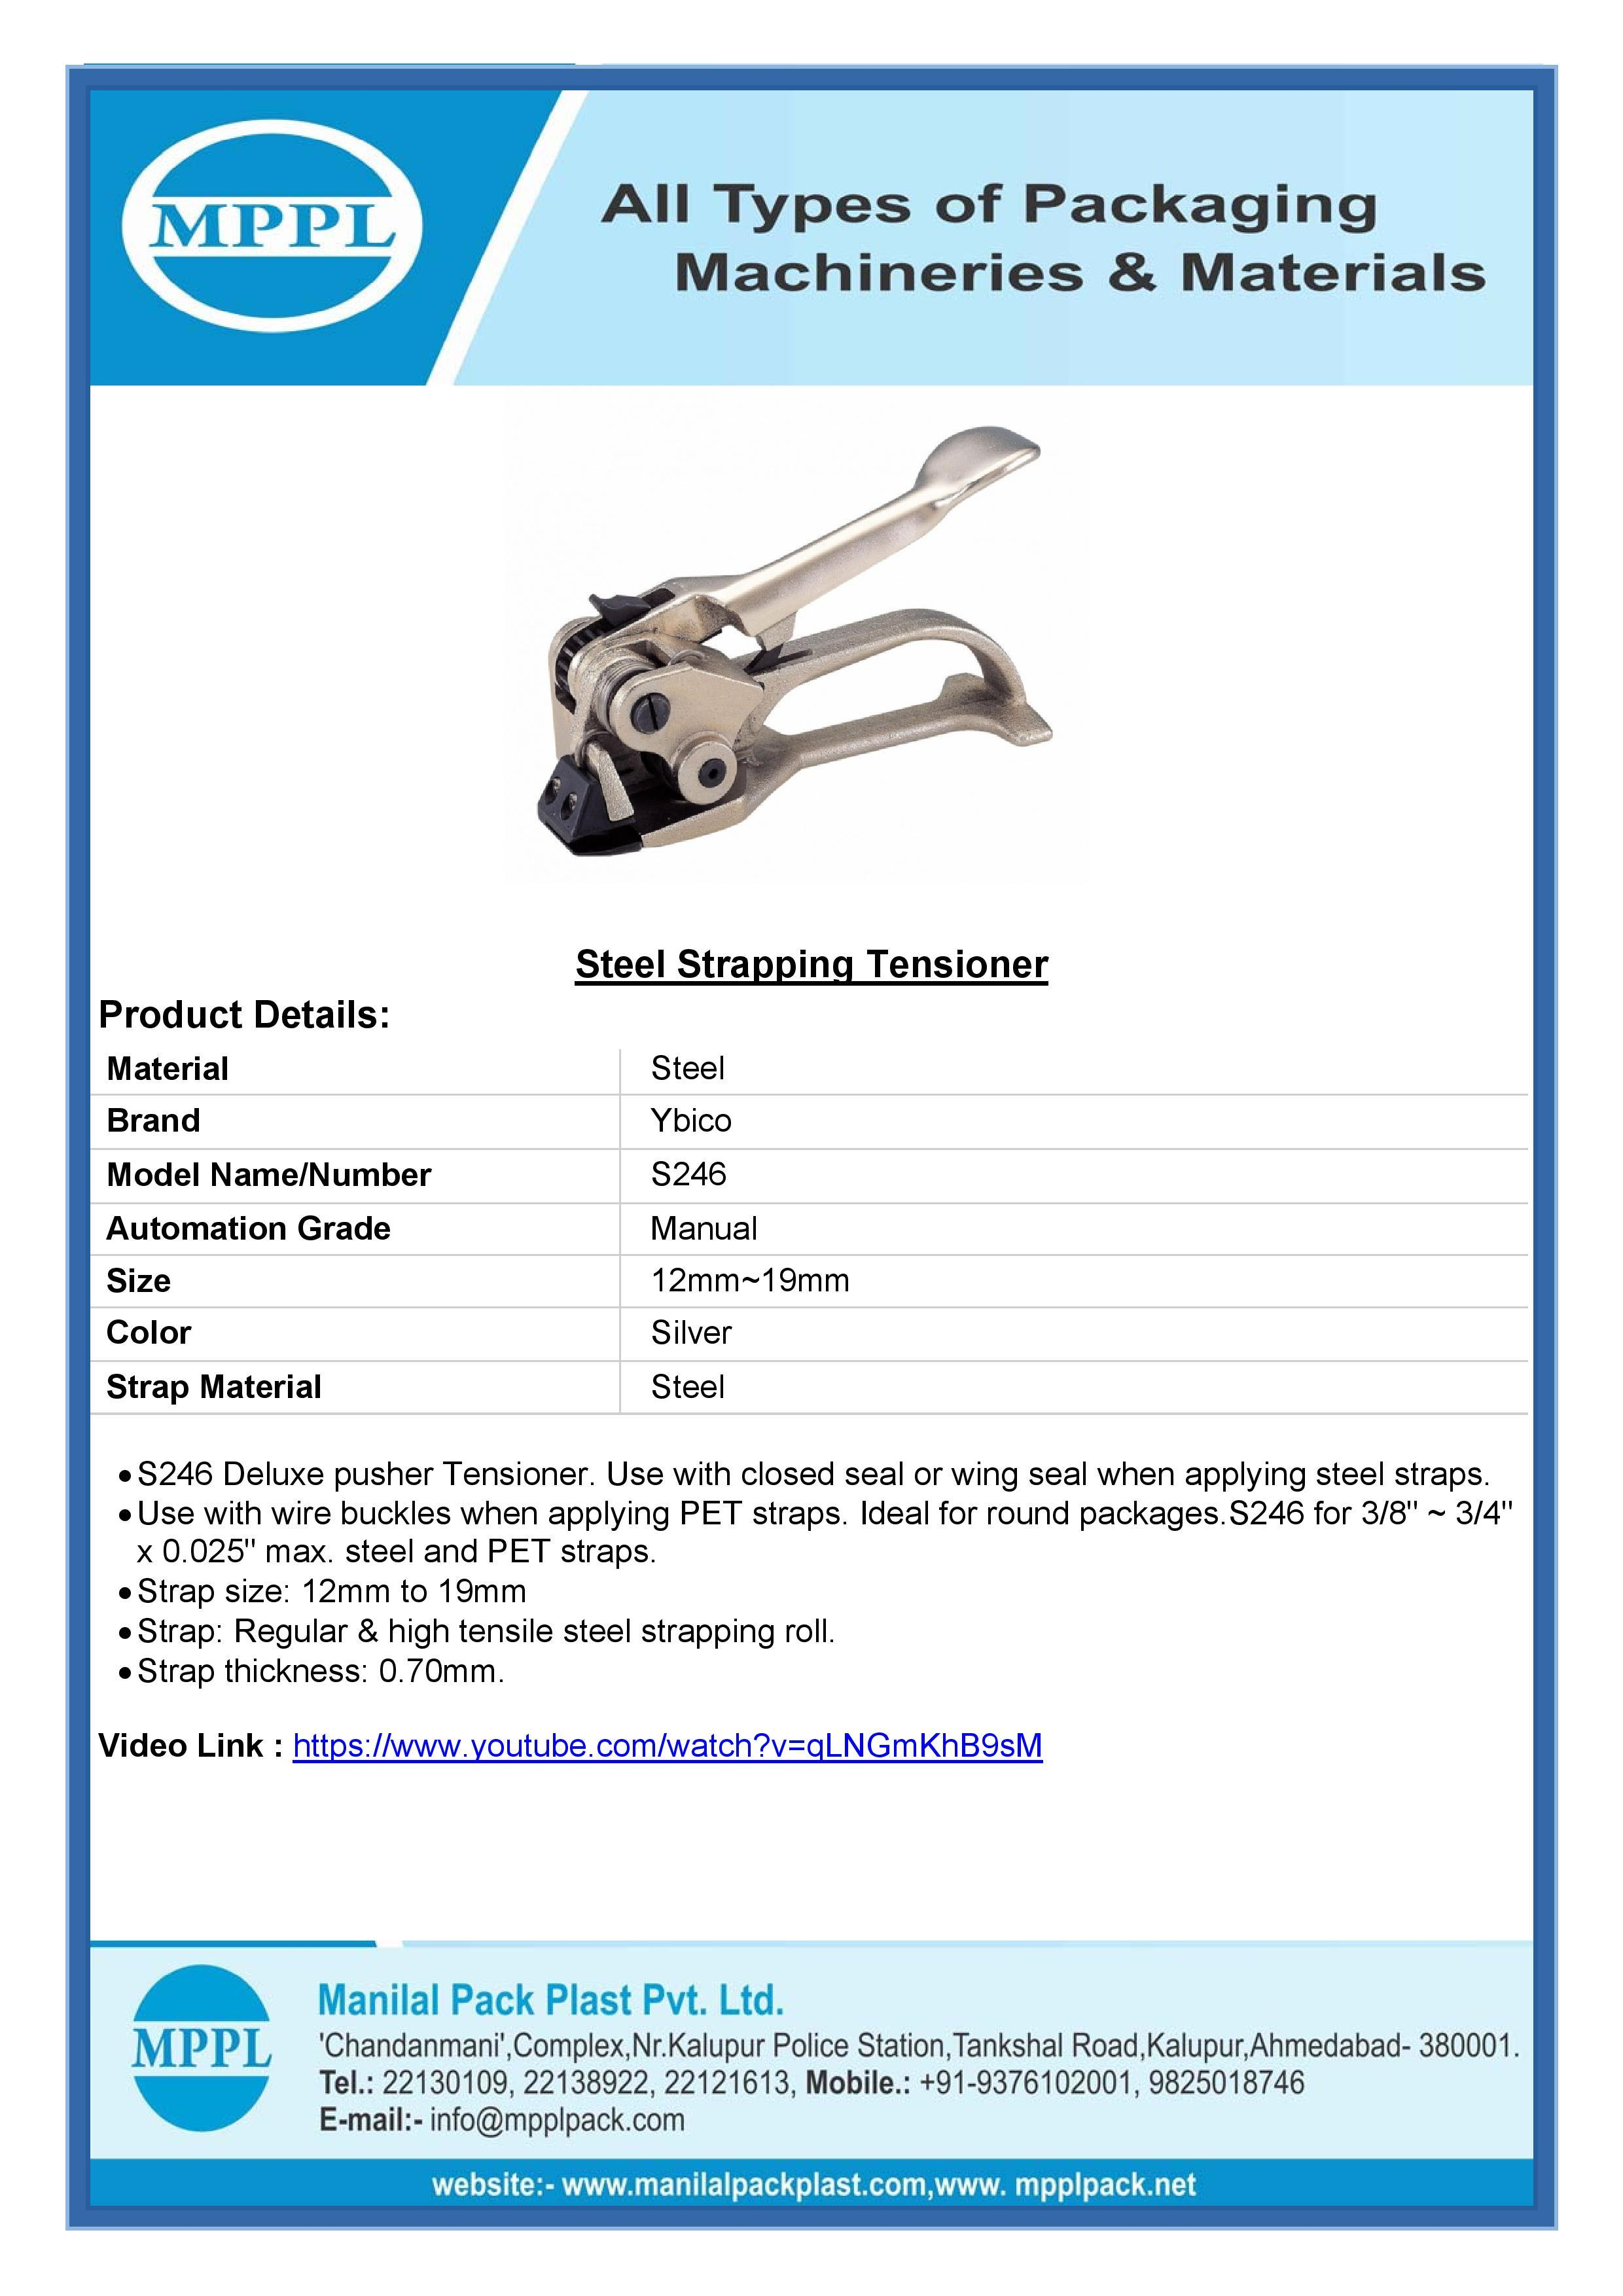 Steel Strapping Tensioner S246